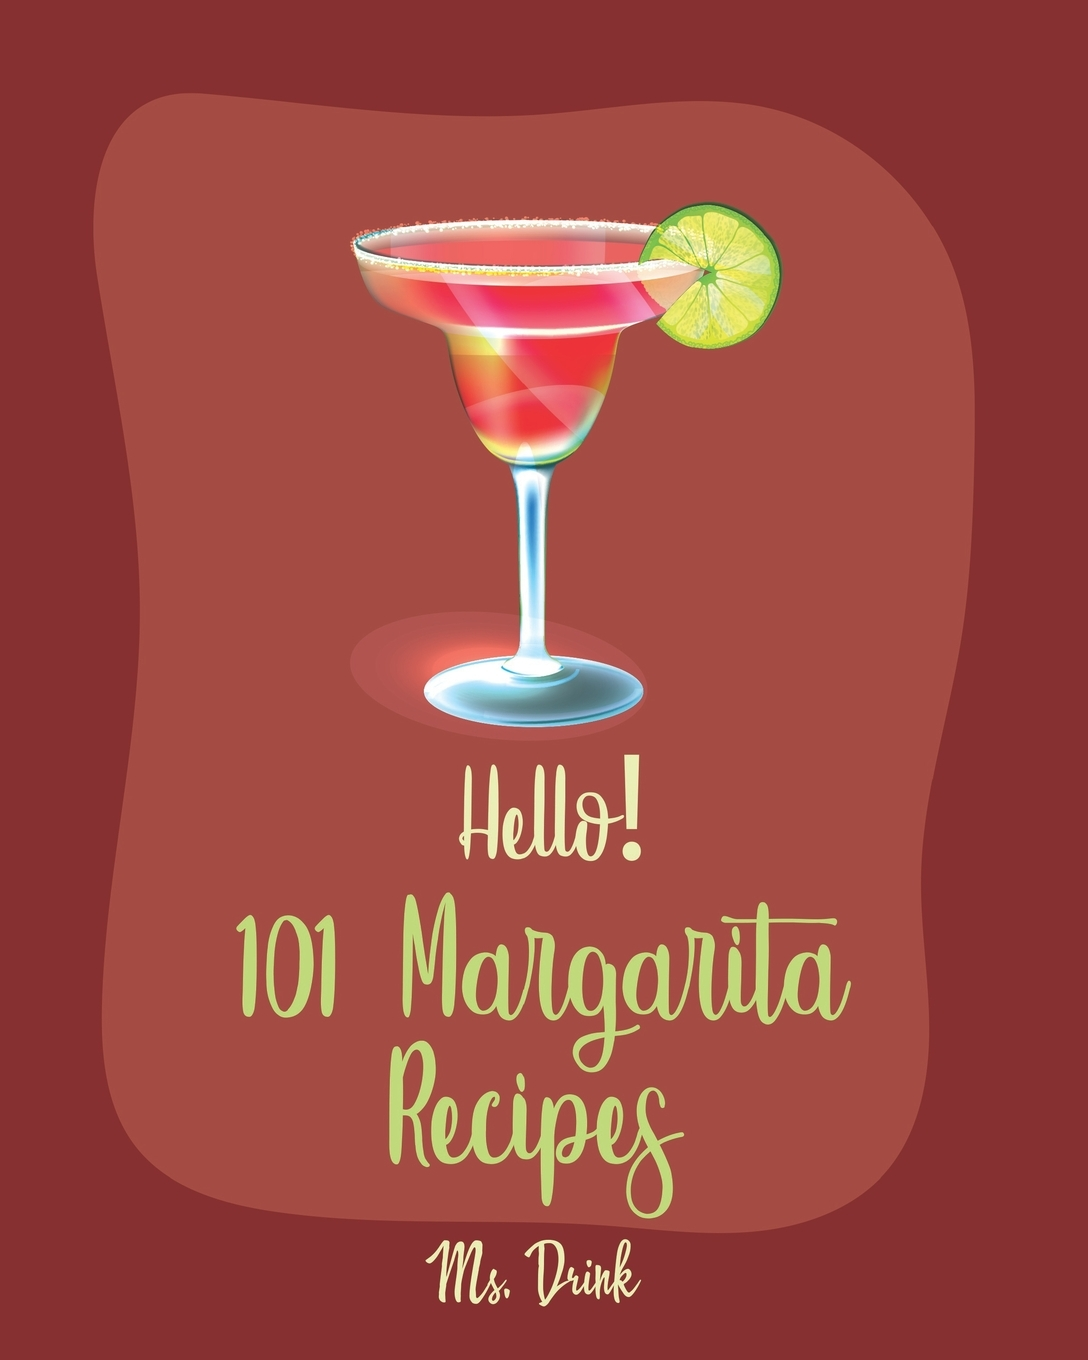 Margarita Recipes Hello 101 Margarita Recipes Best Margarita Cookbook Ever For Beginners Tequila Cocktail Recipe Book Frozen Cocktail Recipe Book Summer Cocktails Cookbook Keto Cocktail Recipe Paperback Walmart Com Walmart Com